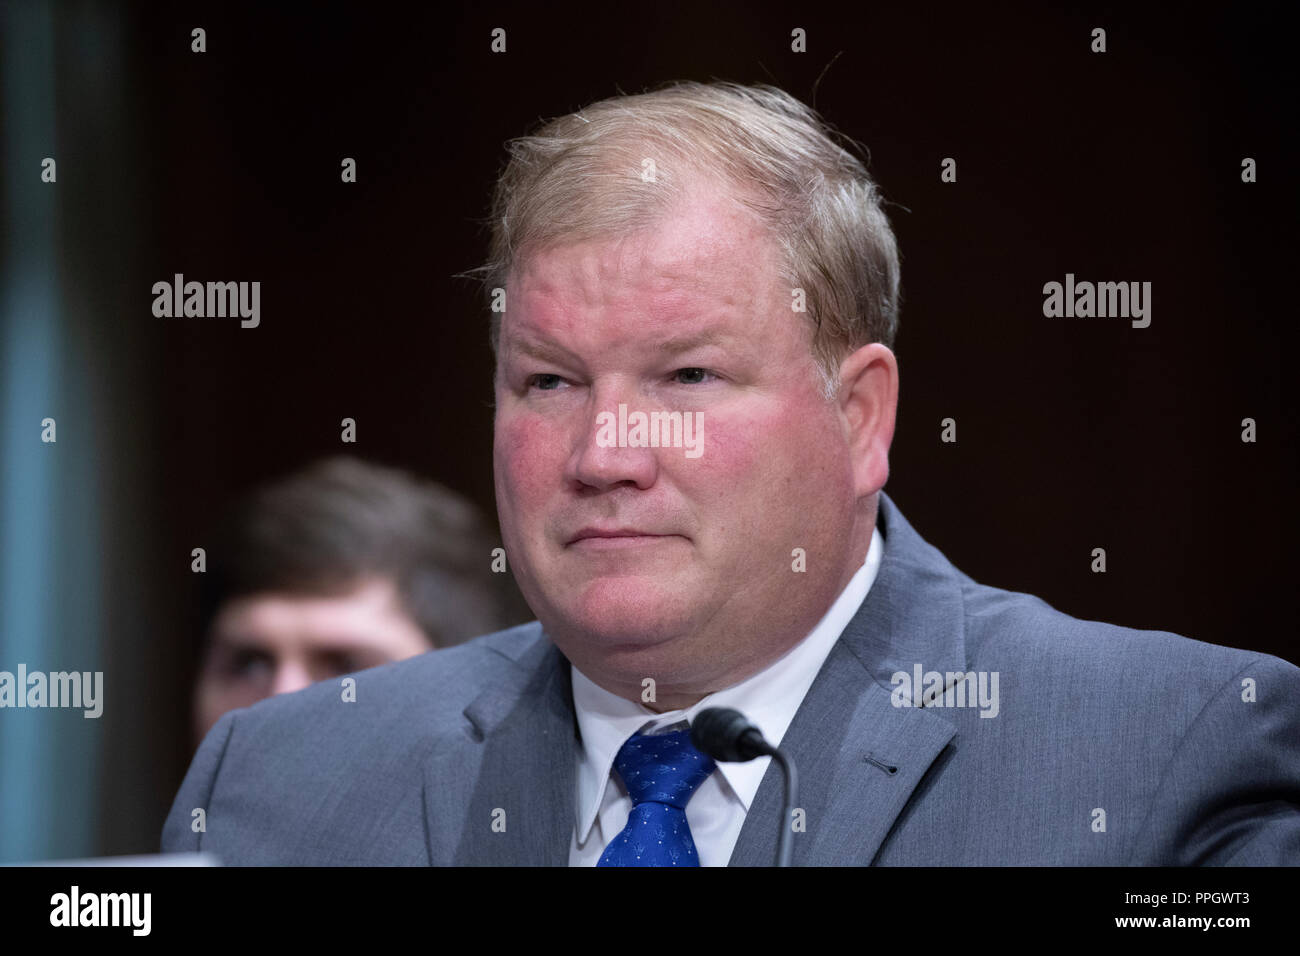 Mark Montgomery testifies during a hearing to confirm new administrators for the United States Agency for International Development on Capitol Hill in Washington, DC on September 25, 2018. Credit: Alex Edelman/CNP | usage worldwide - Stock Image